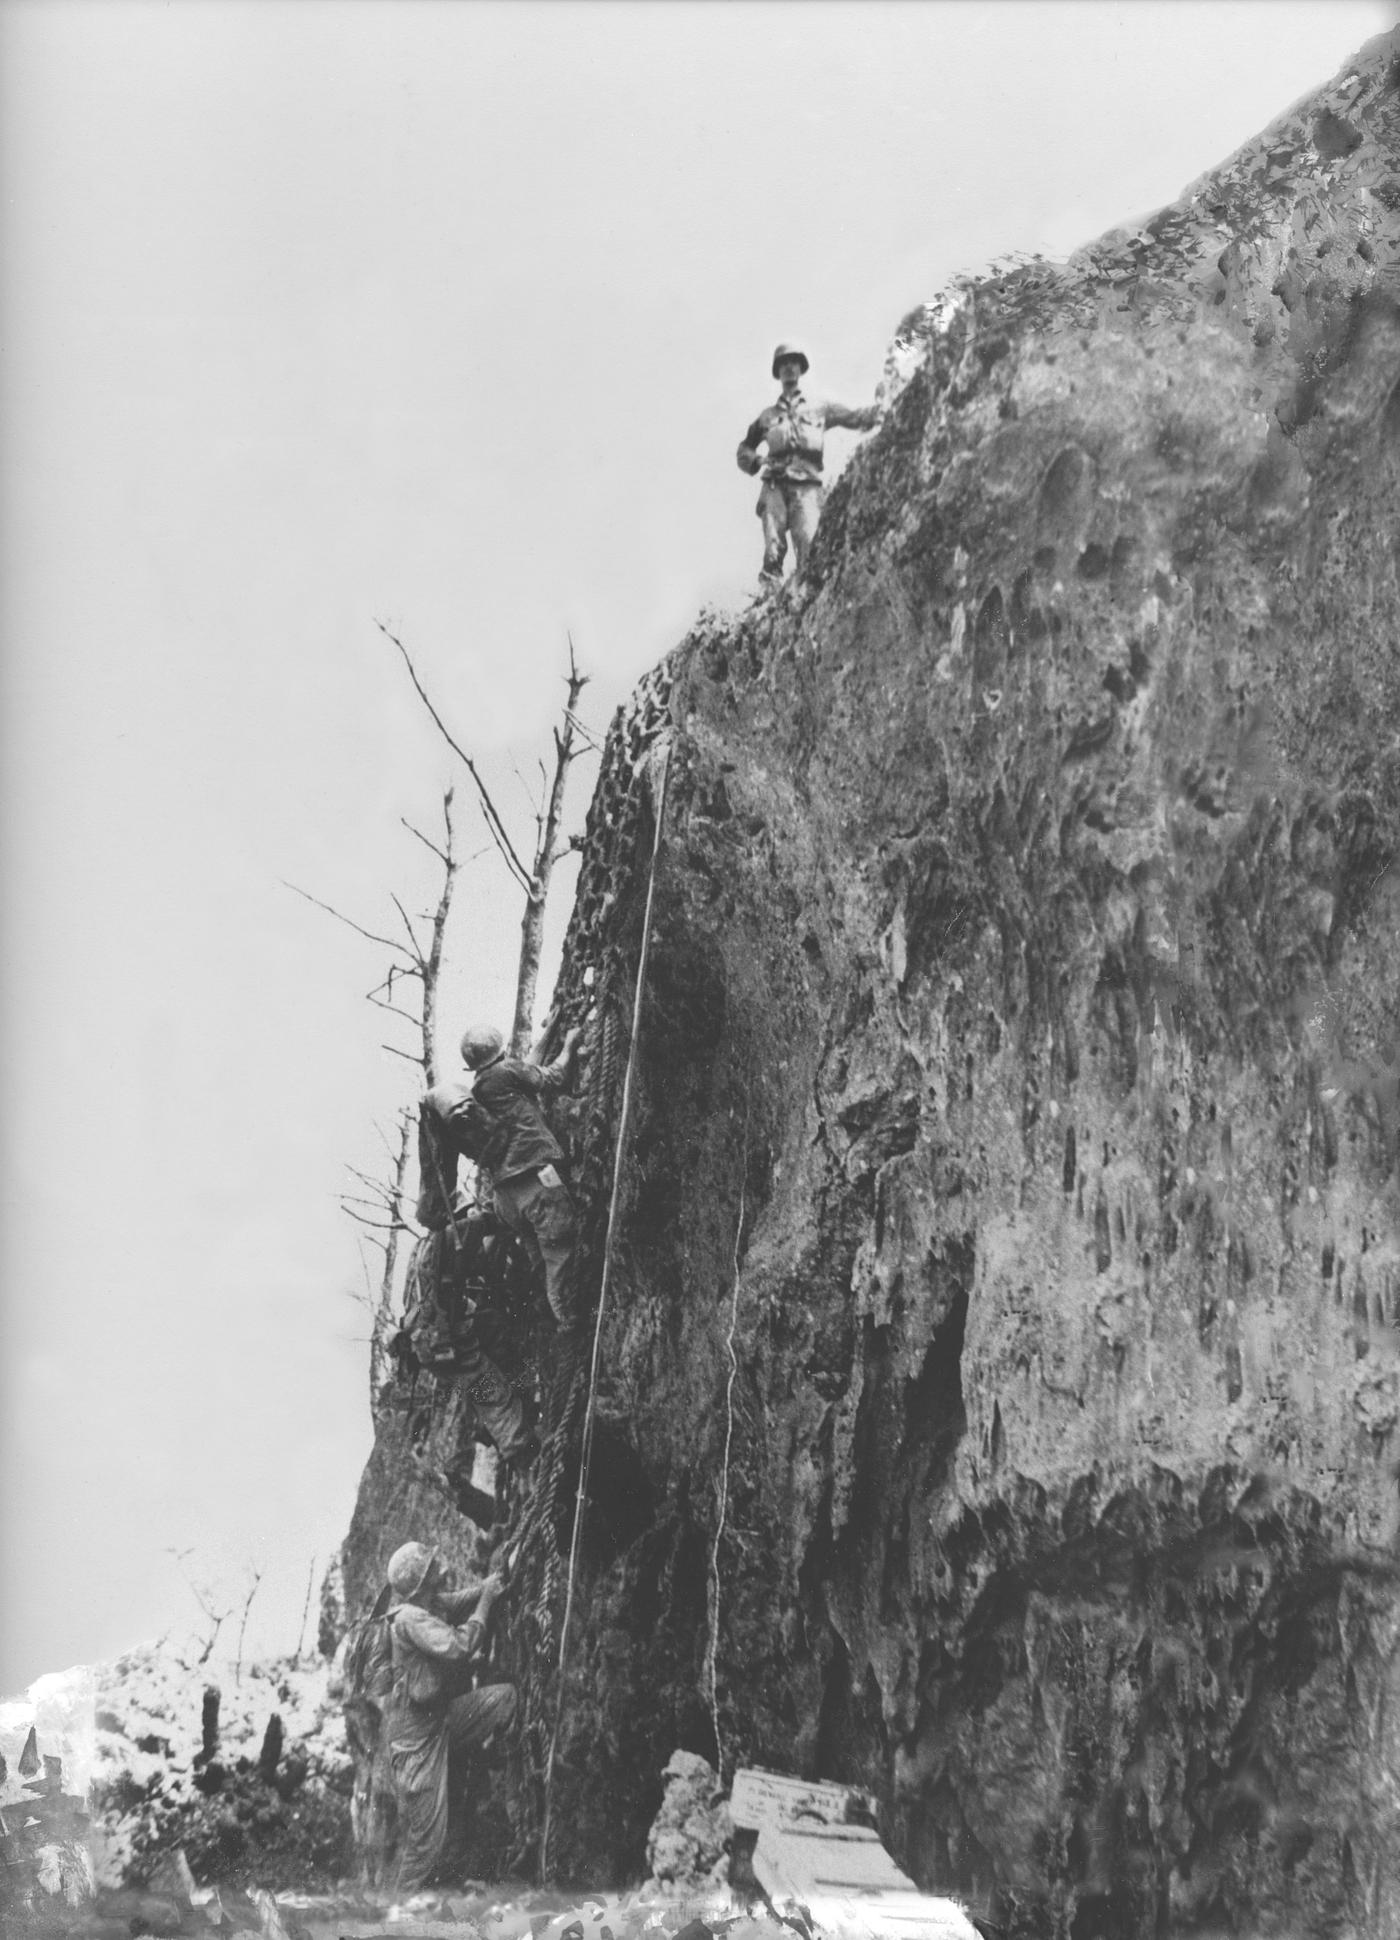 Doss stands at the top of Maeda Escarpment after placing cargo nets on the side of the cliff- Doss was one of the volunteers who carried the net to the top.